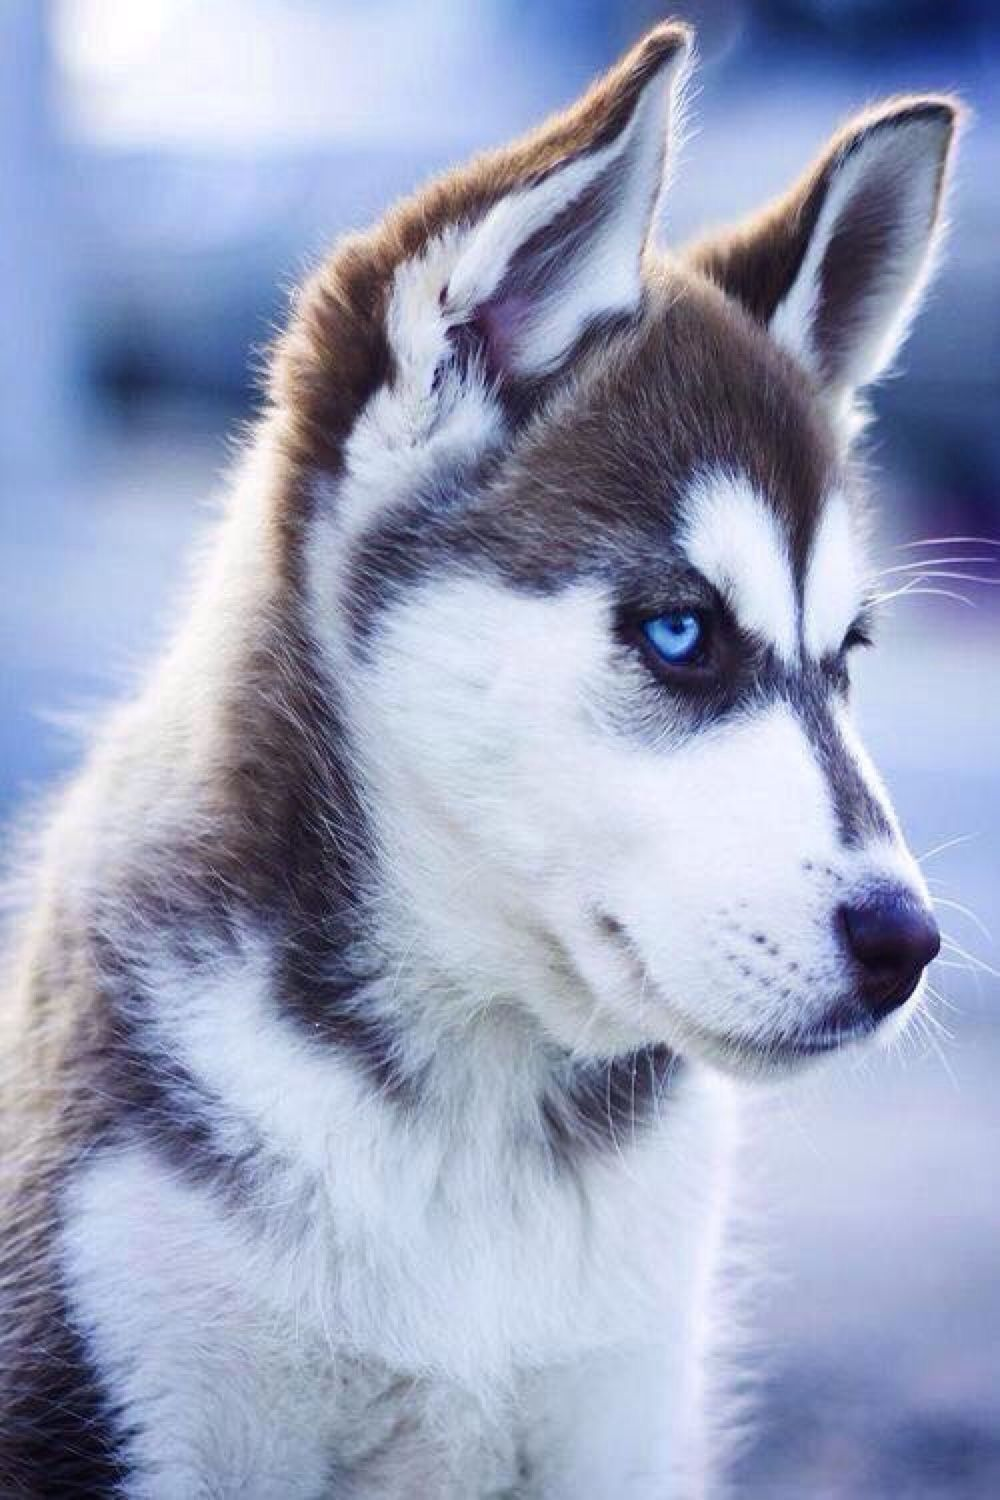 Pin by Kassie Stahl on animals | Perro siberiano, Animales ...